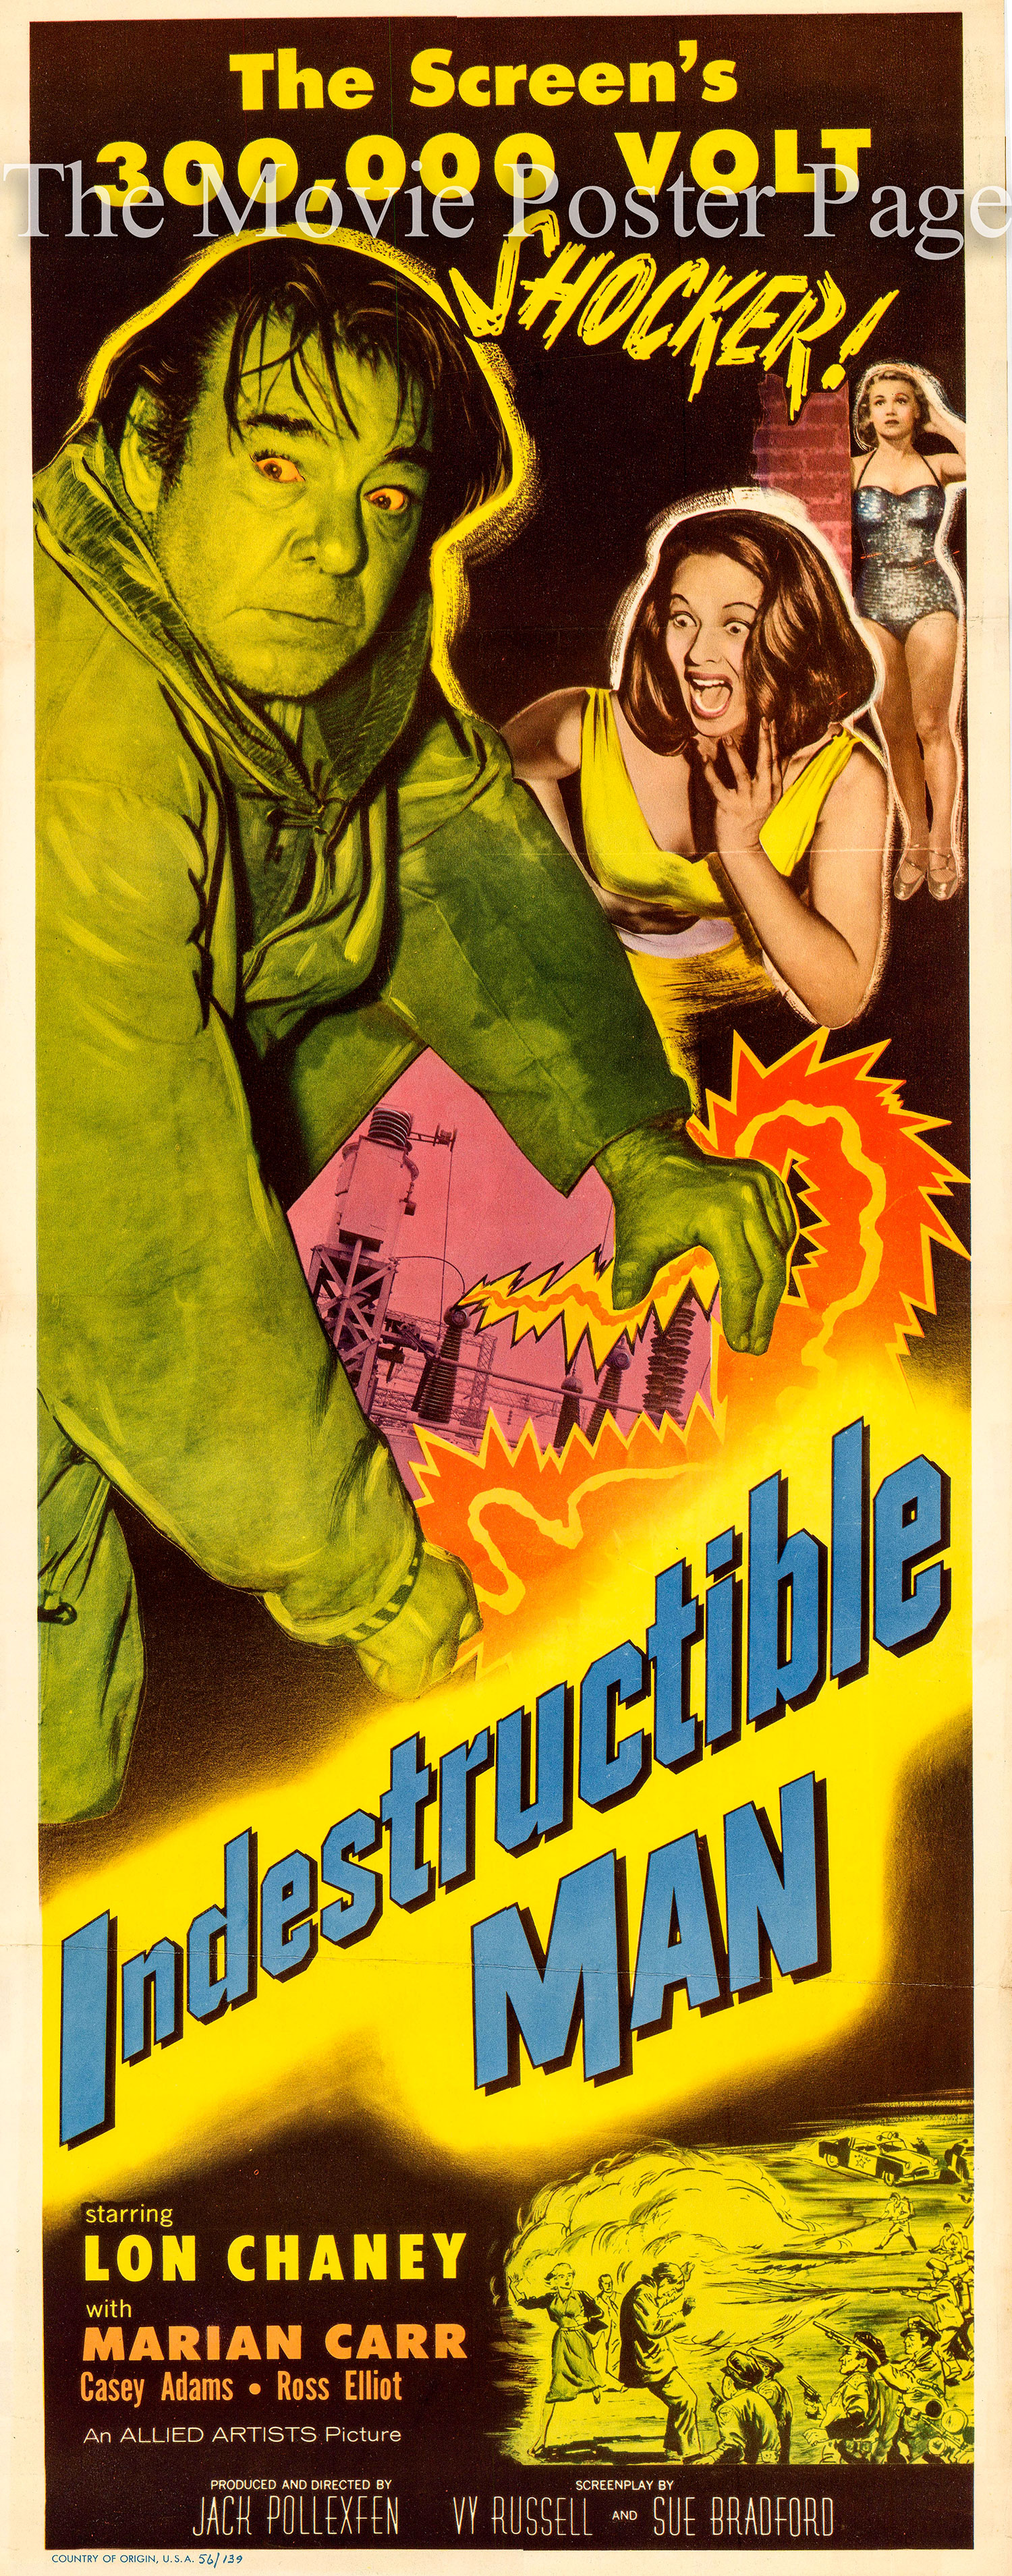 Pictured is a US one-sheet promotional poster for the 1956 Jack Pollexferi film Indestructible Man starring Lon Chaney Jr.